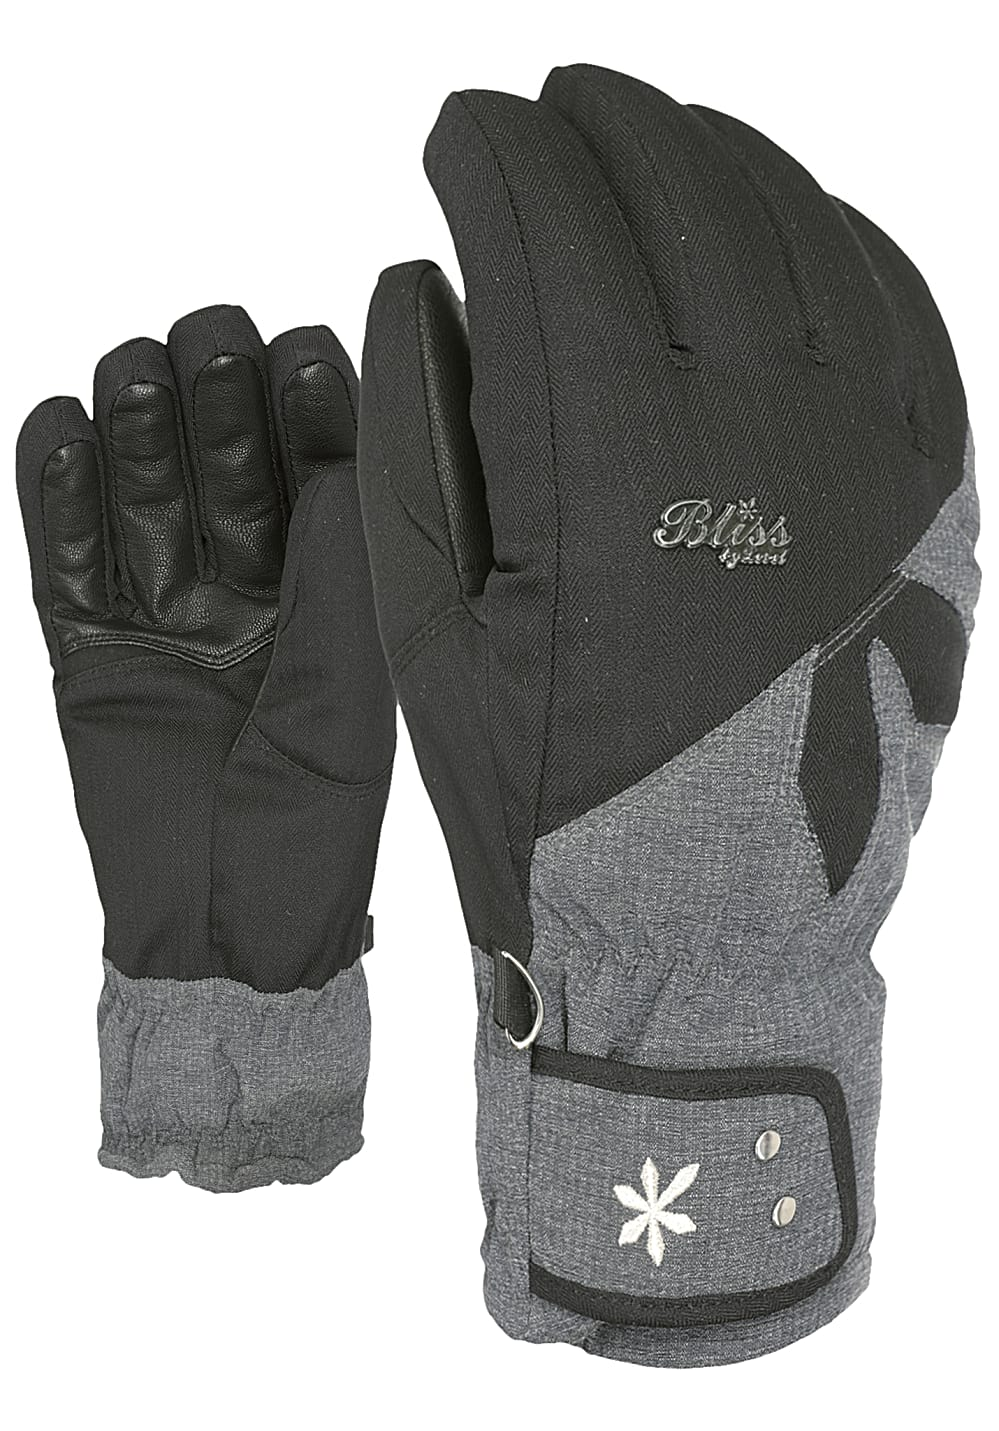 e9631460f8b5be Roxy Packable - Snowboard Handschuhe für Damen - Schwarz - Planet Sports